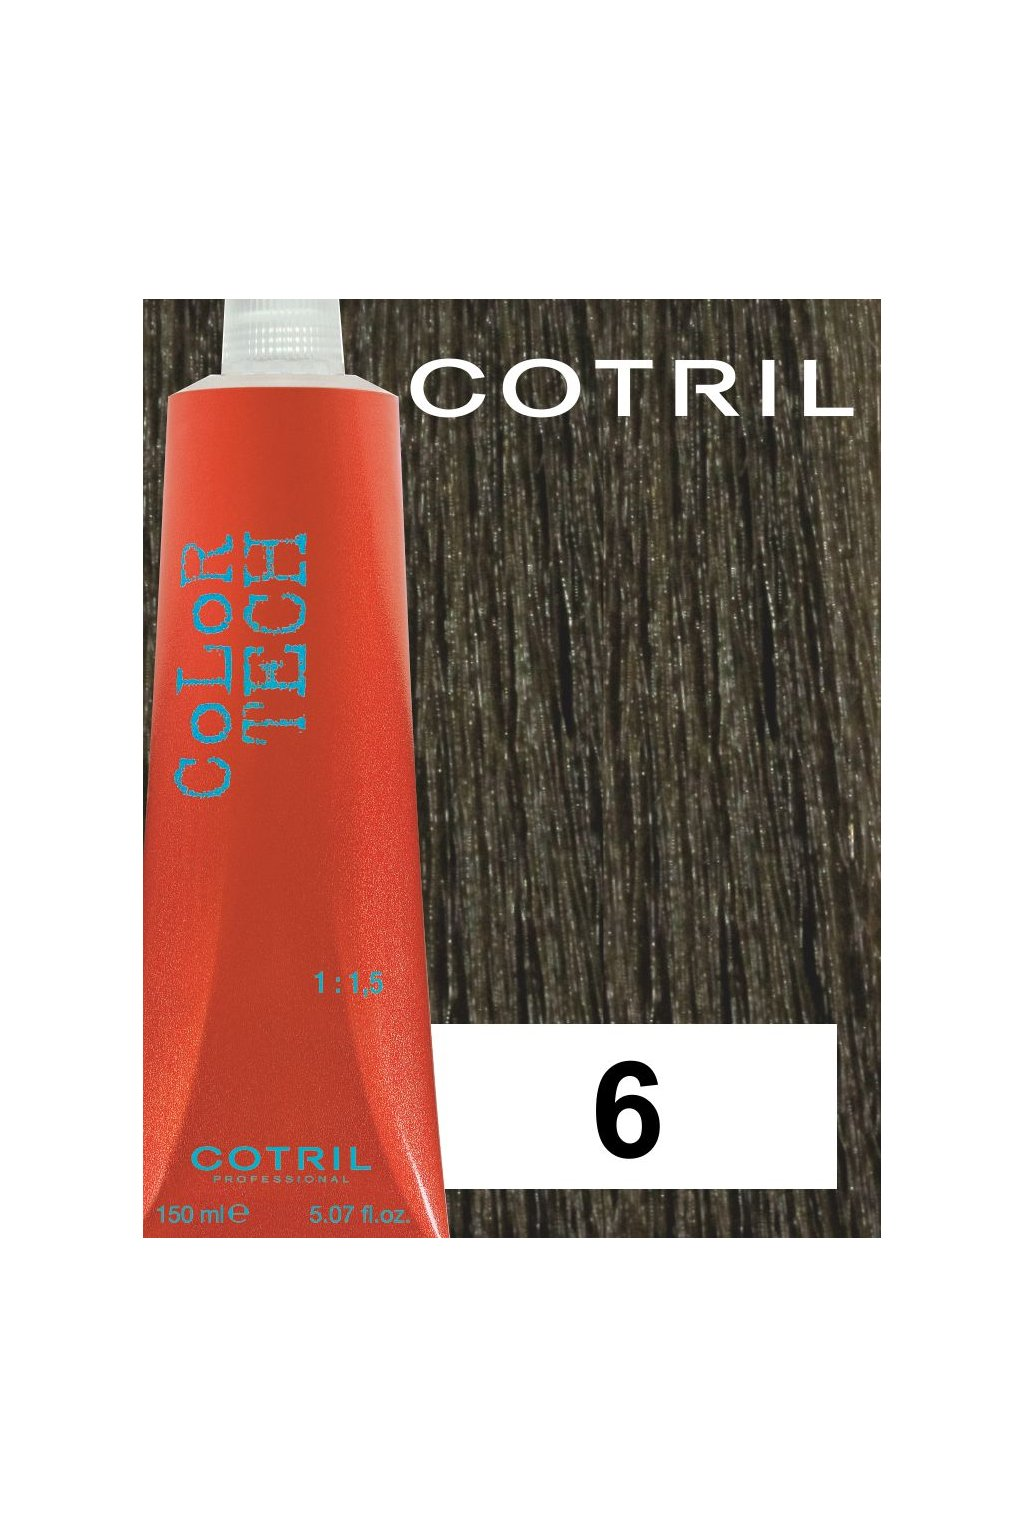 6 ct cotril